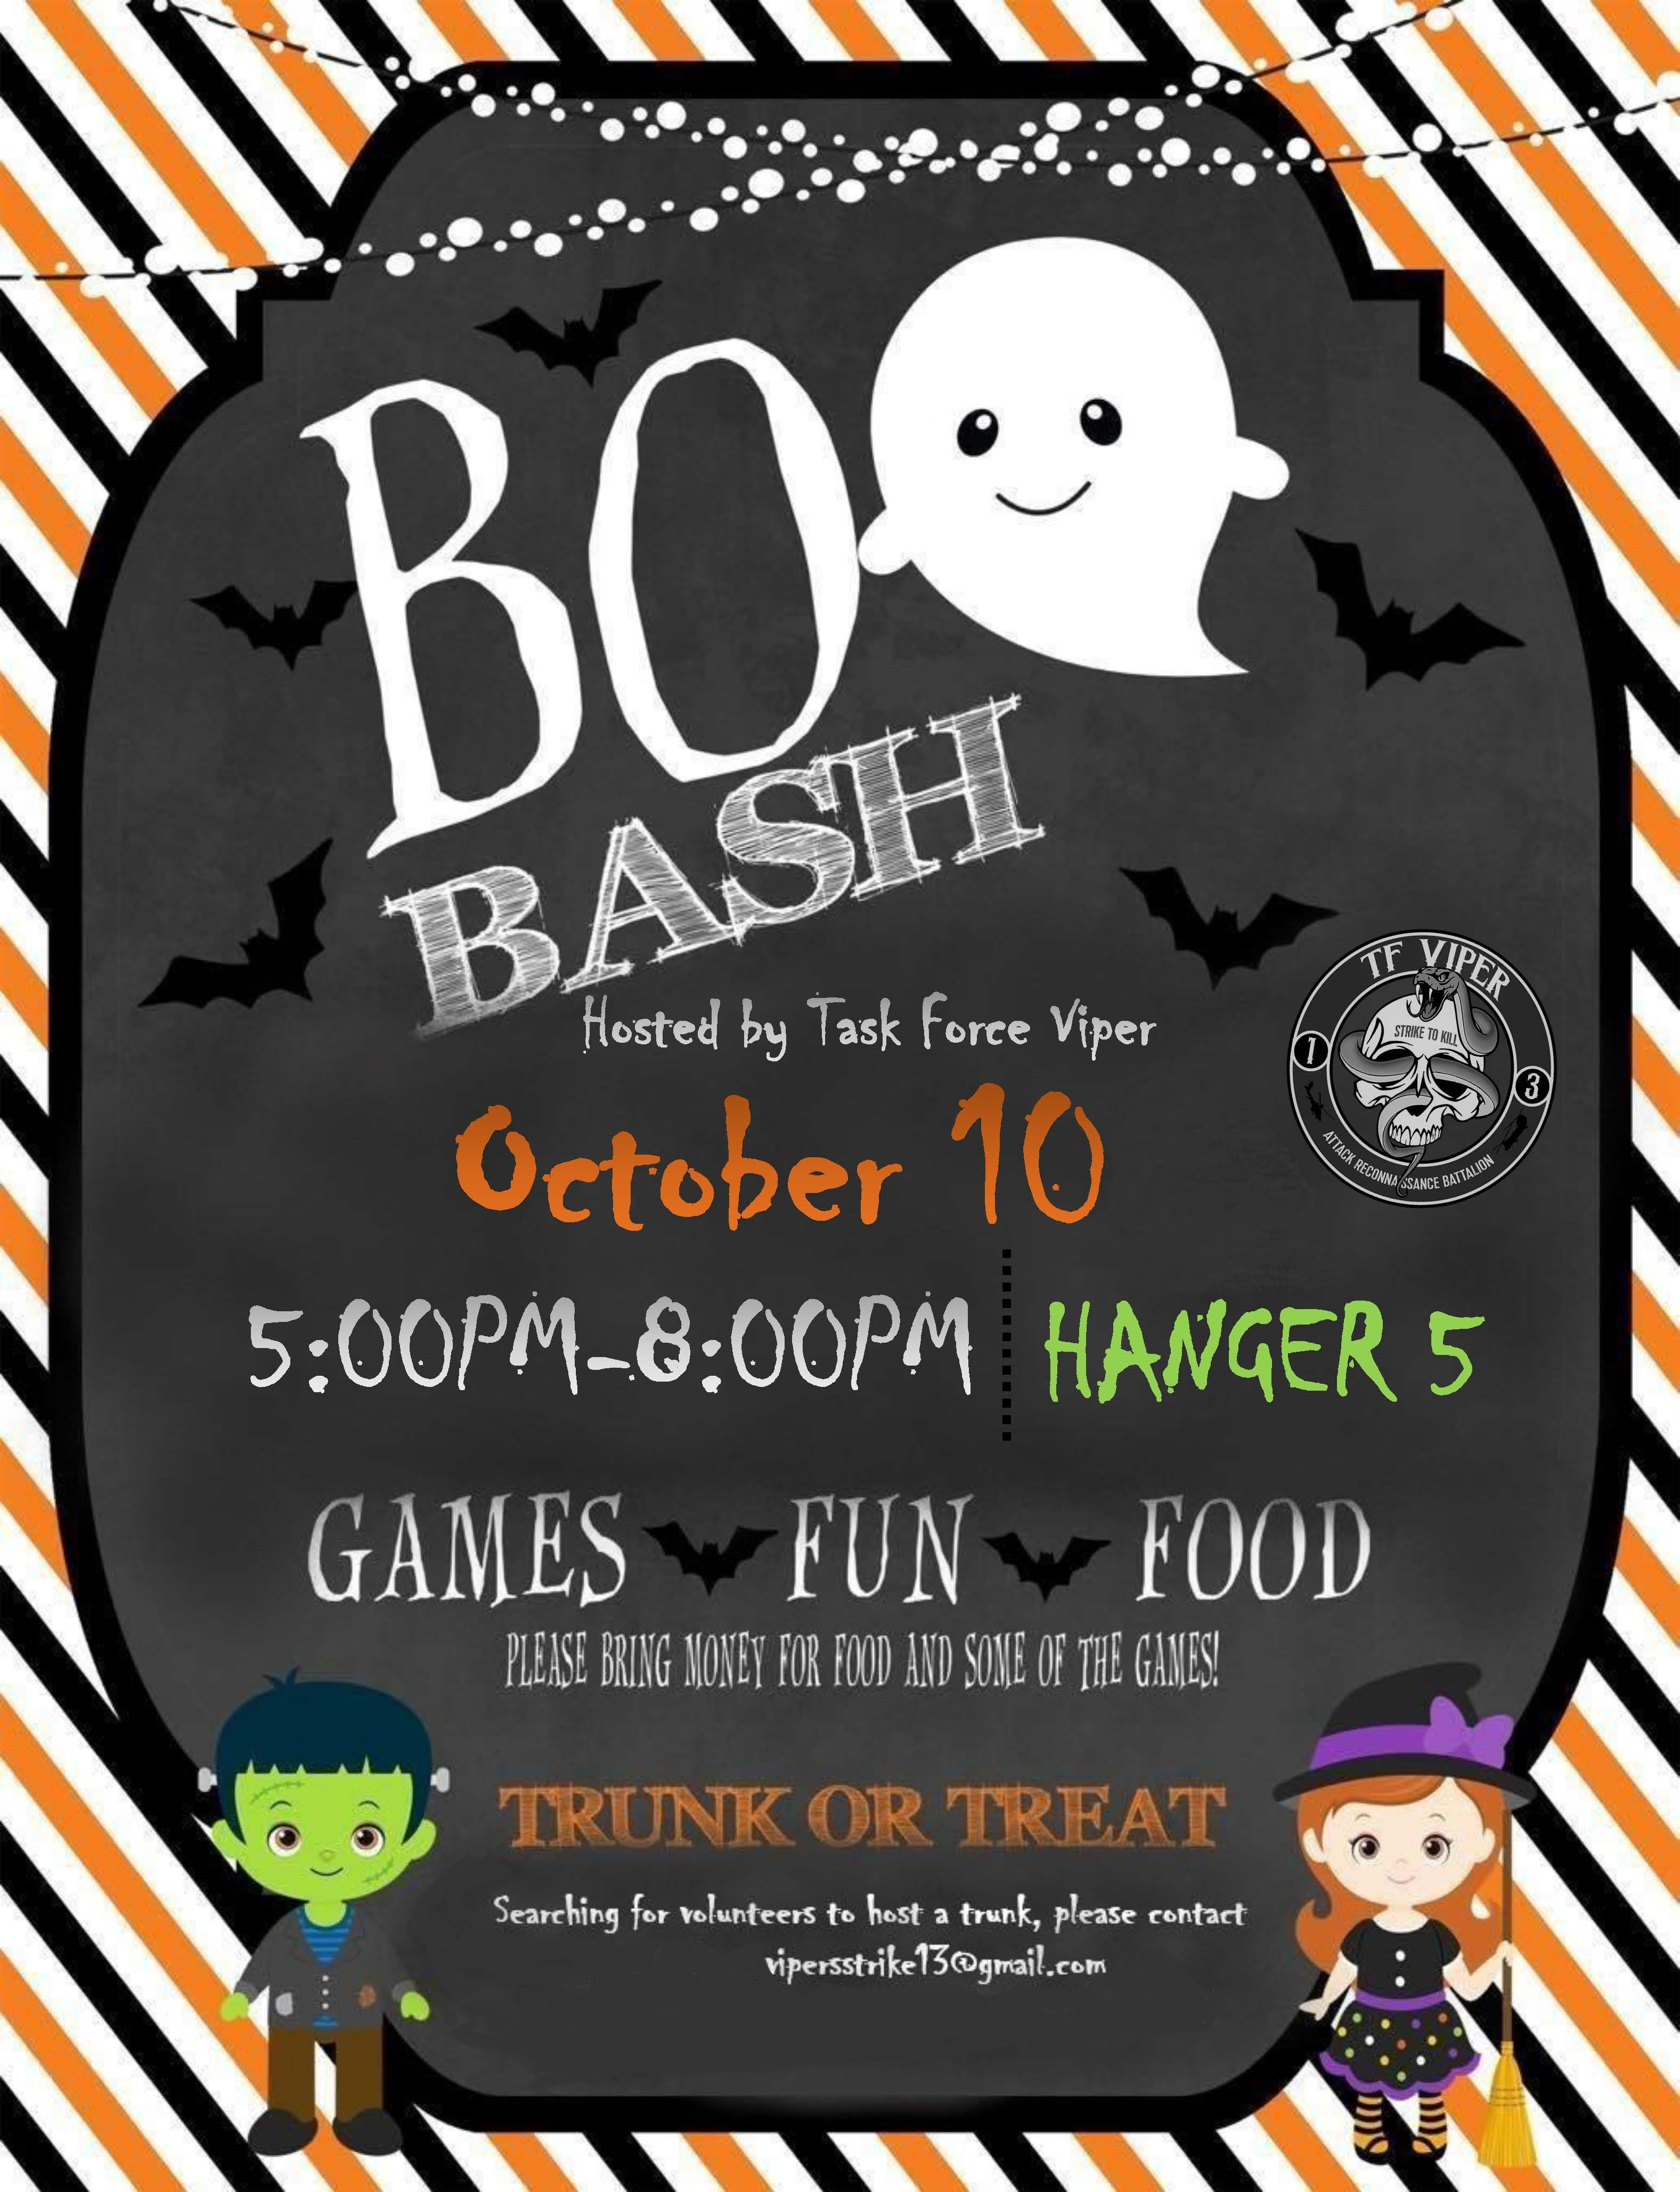 Boo Bash Trunk or Treat